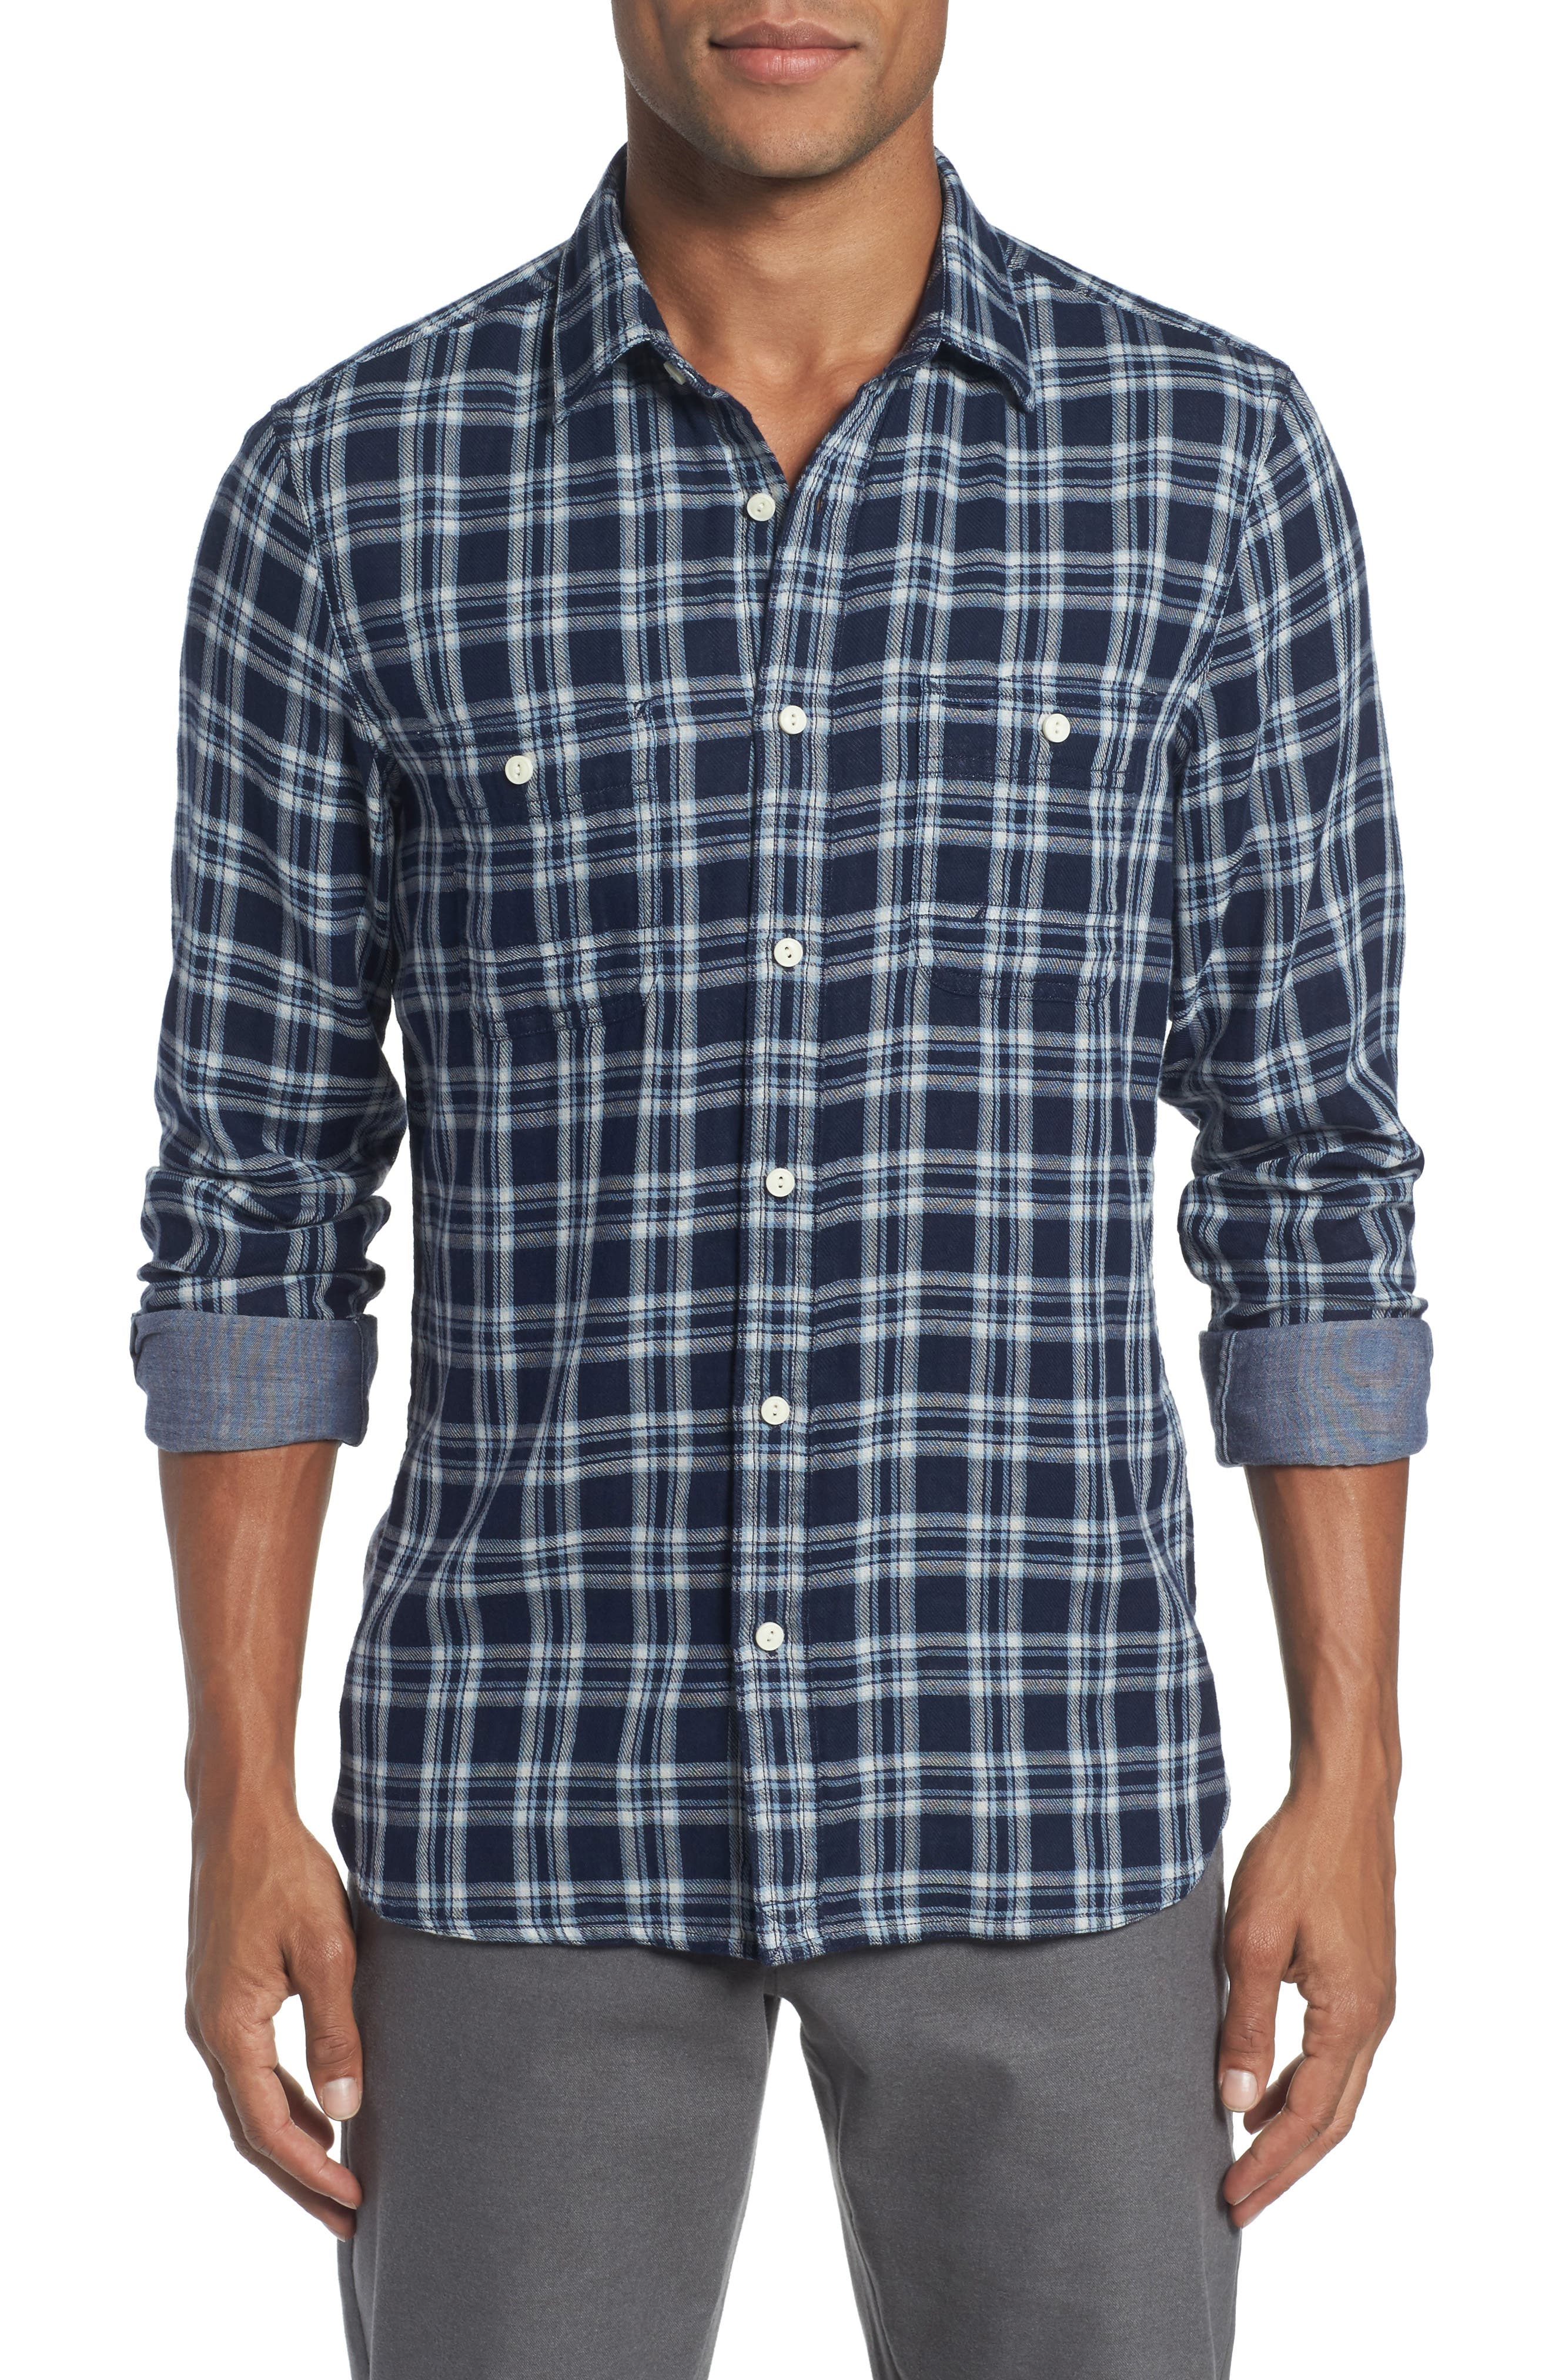 Alternate Image 1 Selected - Nordstrom Men's Shop Trim Fit Workwear Duofold Check Sport Shirt